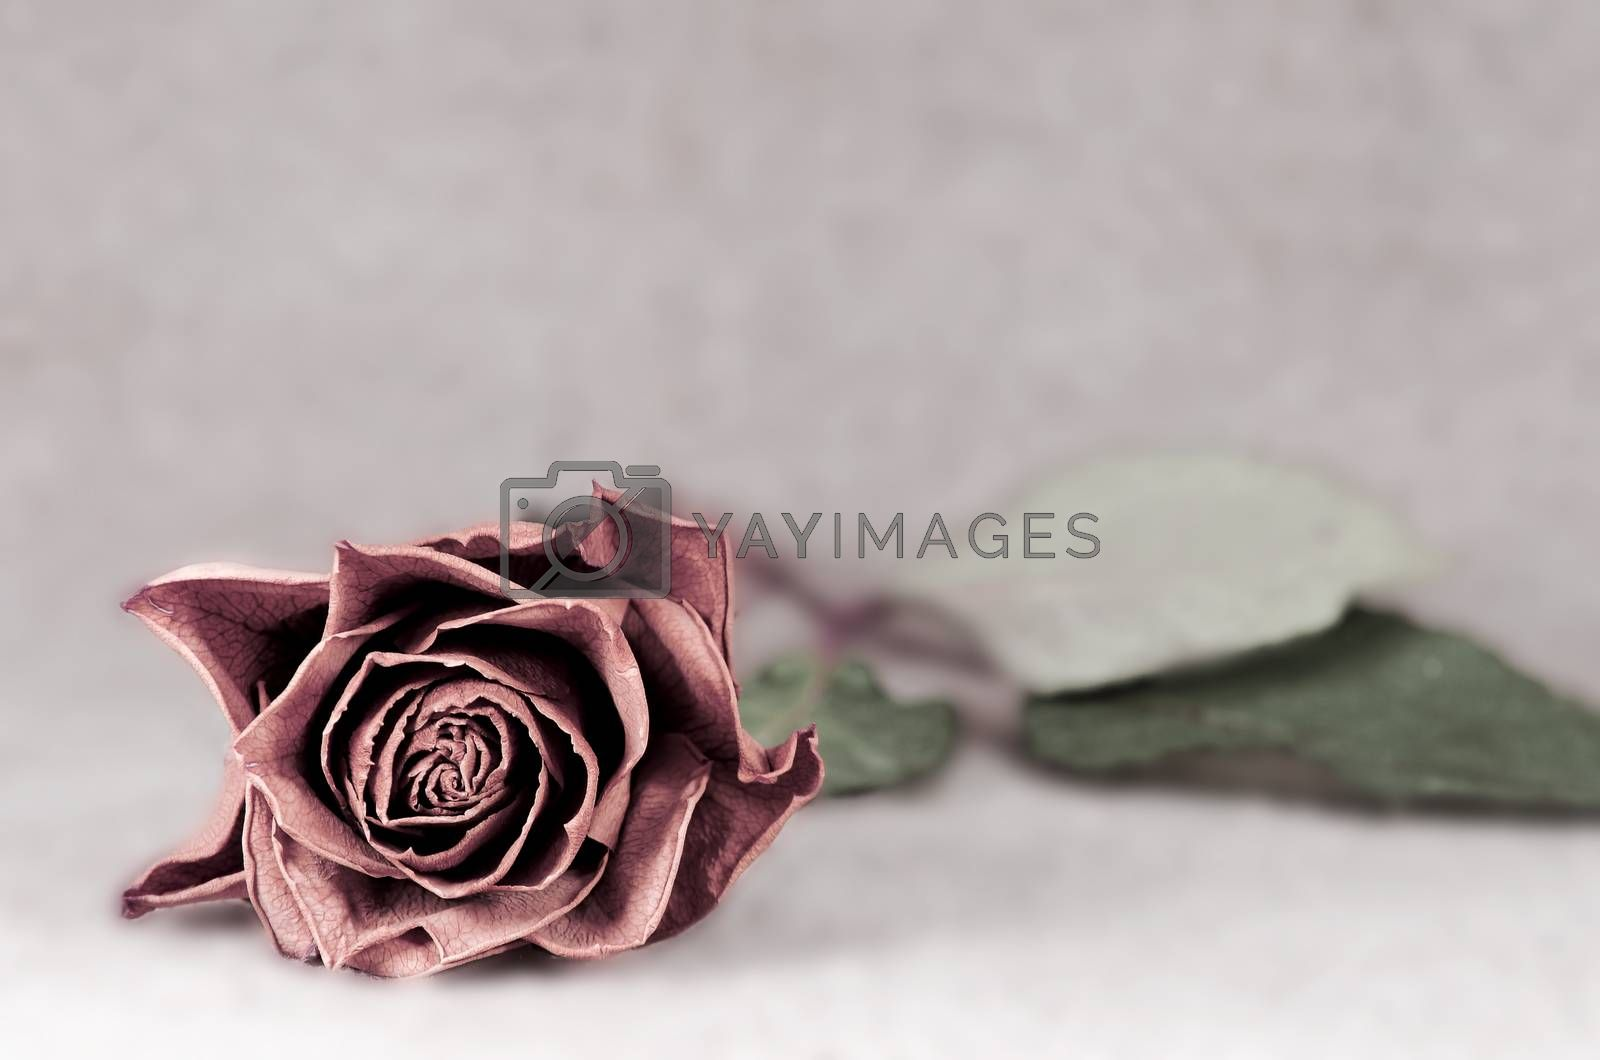 faded rose on blurred background